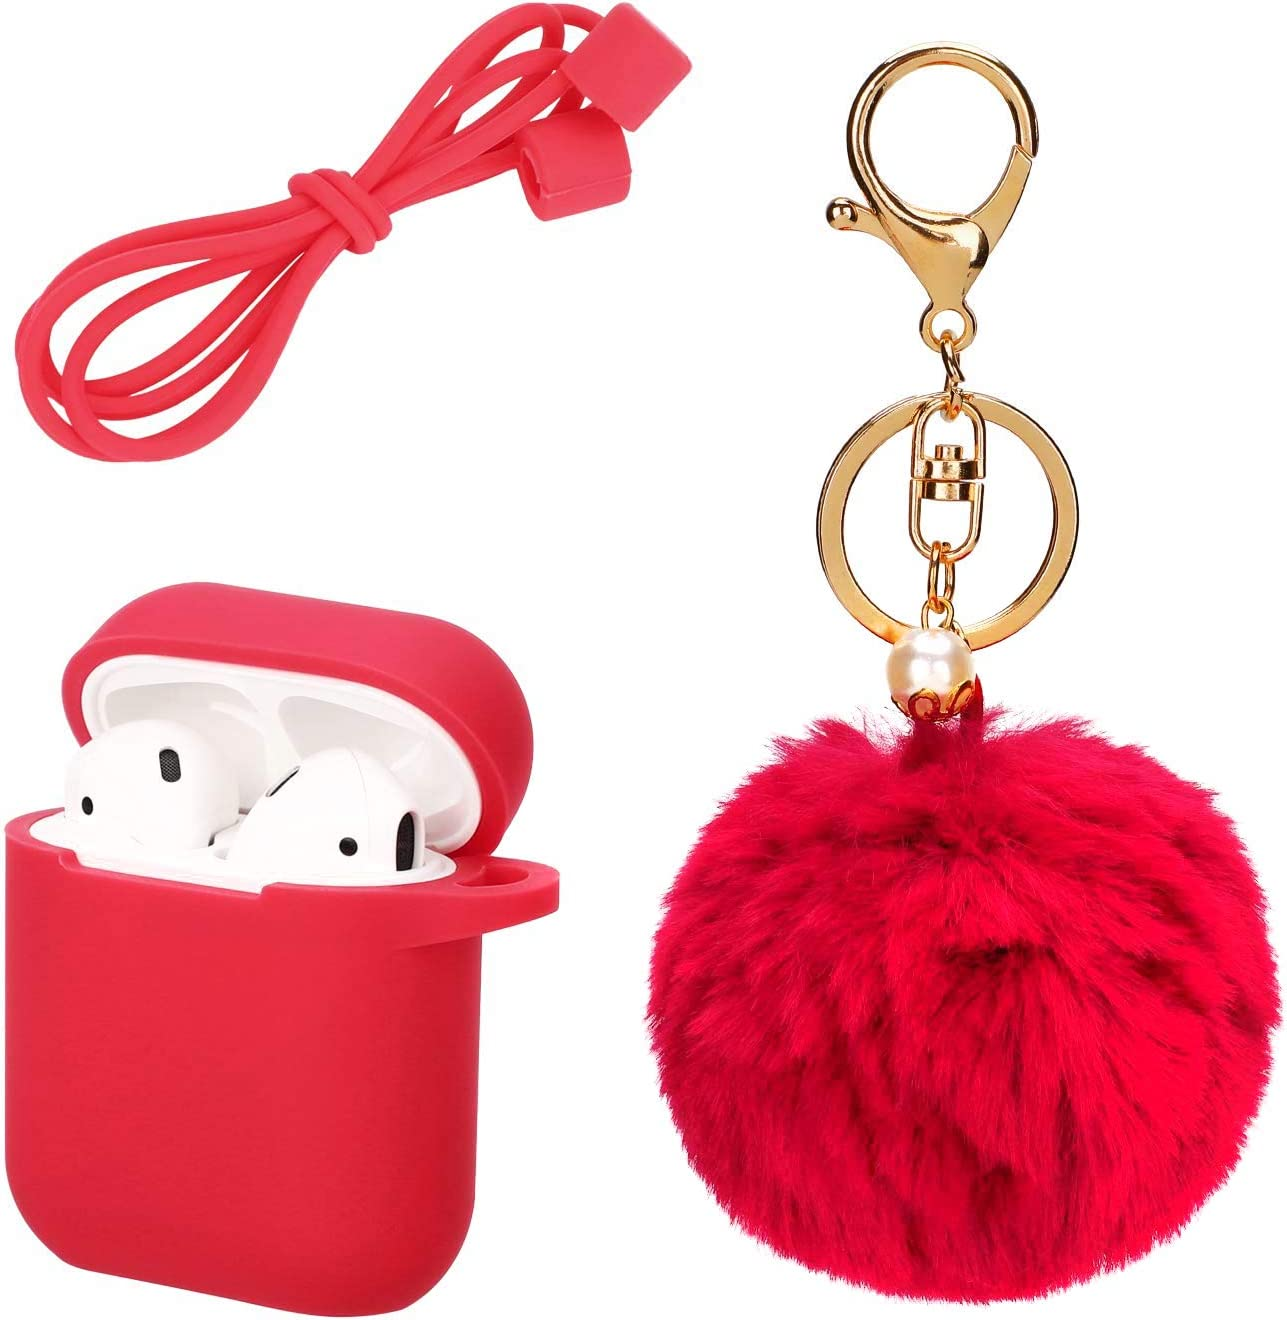 Protective Silicone Cover Skin Compatible with Apple Airpods Charging Drop Proof Case Cover with Fluffy Pompom Keychain and Anti-Lost Strap Accessories Kit Compatible Airpod Charging Case Red